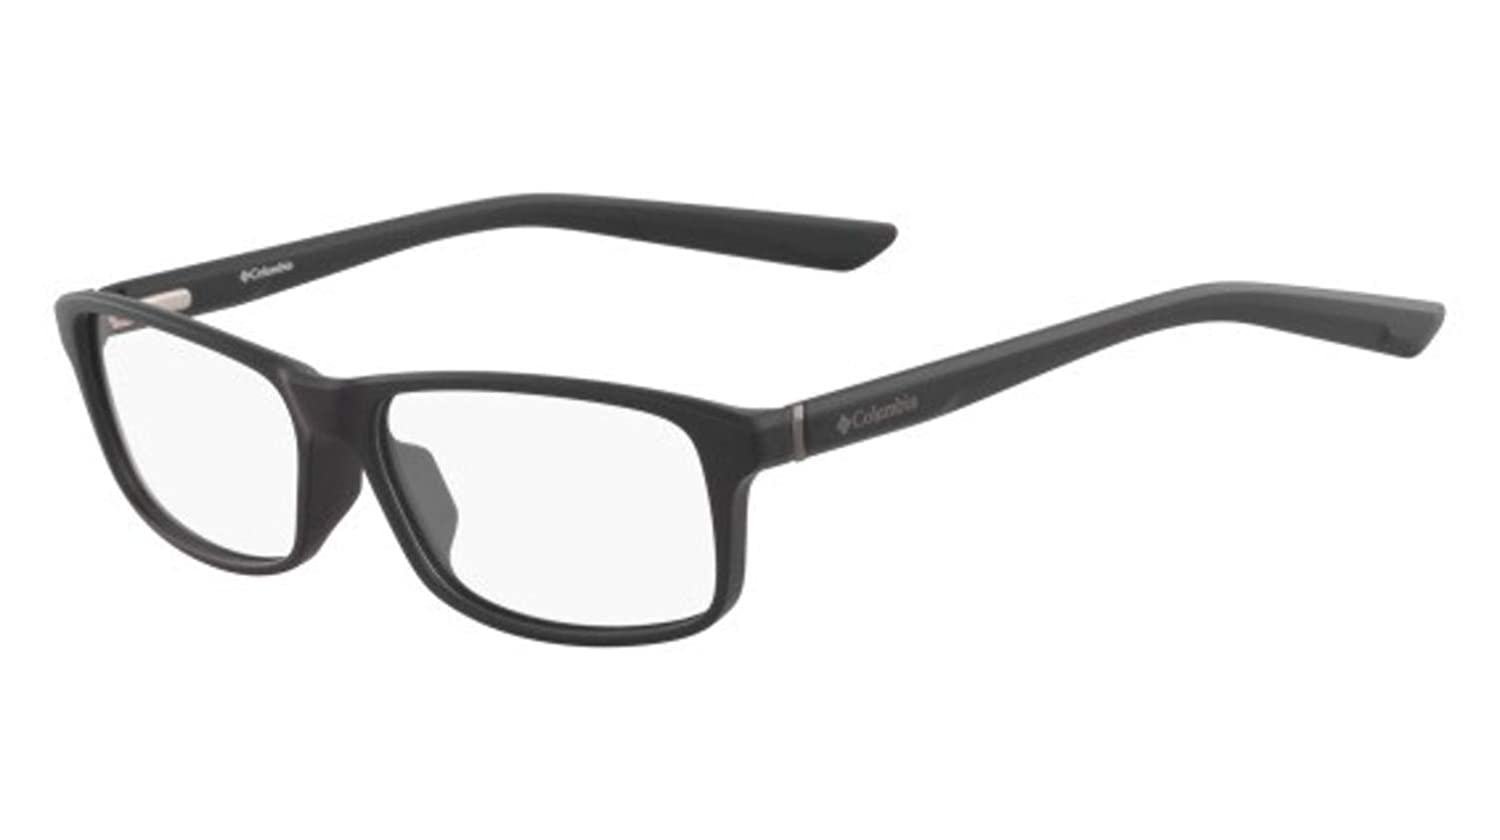 9360484990a Eyeglasses Columbia C 8019 002 MATTE BLACK at Amazon Men's Clothing ...